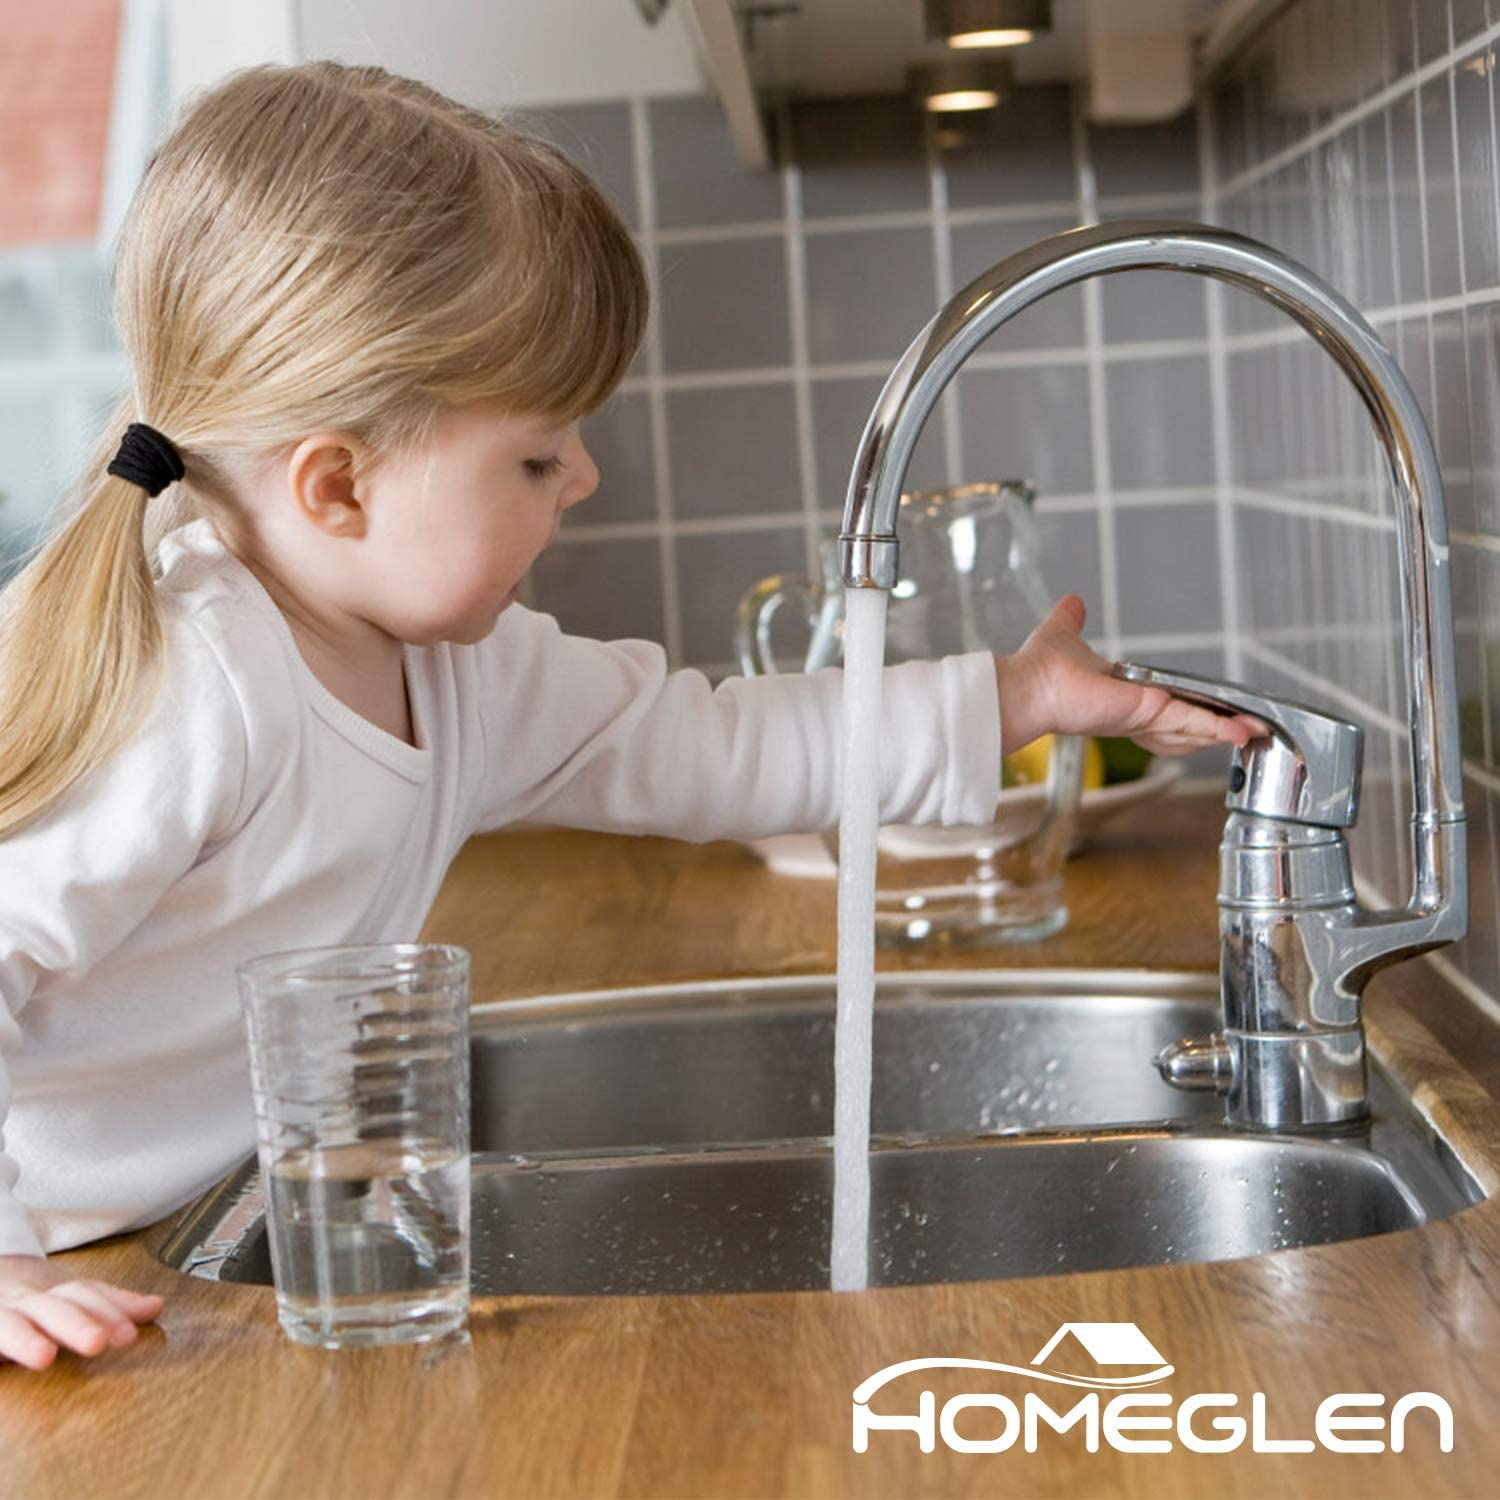 Reduces Lead BPA Free HOMEGLEN Faucet Water Filter Replacement Compatible with Brita 36311 On Tap Water Filtration System Replacement Filters for Faucets 2 Count